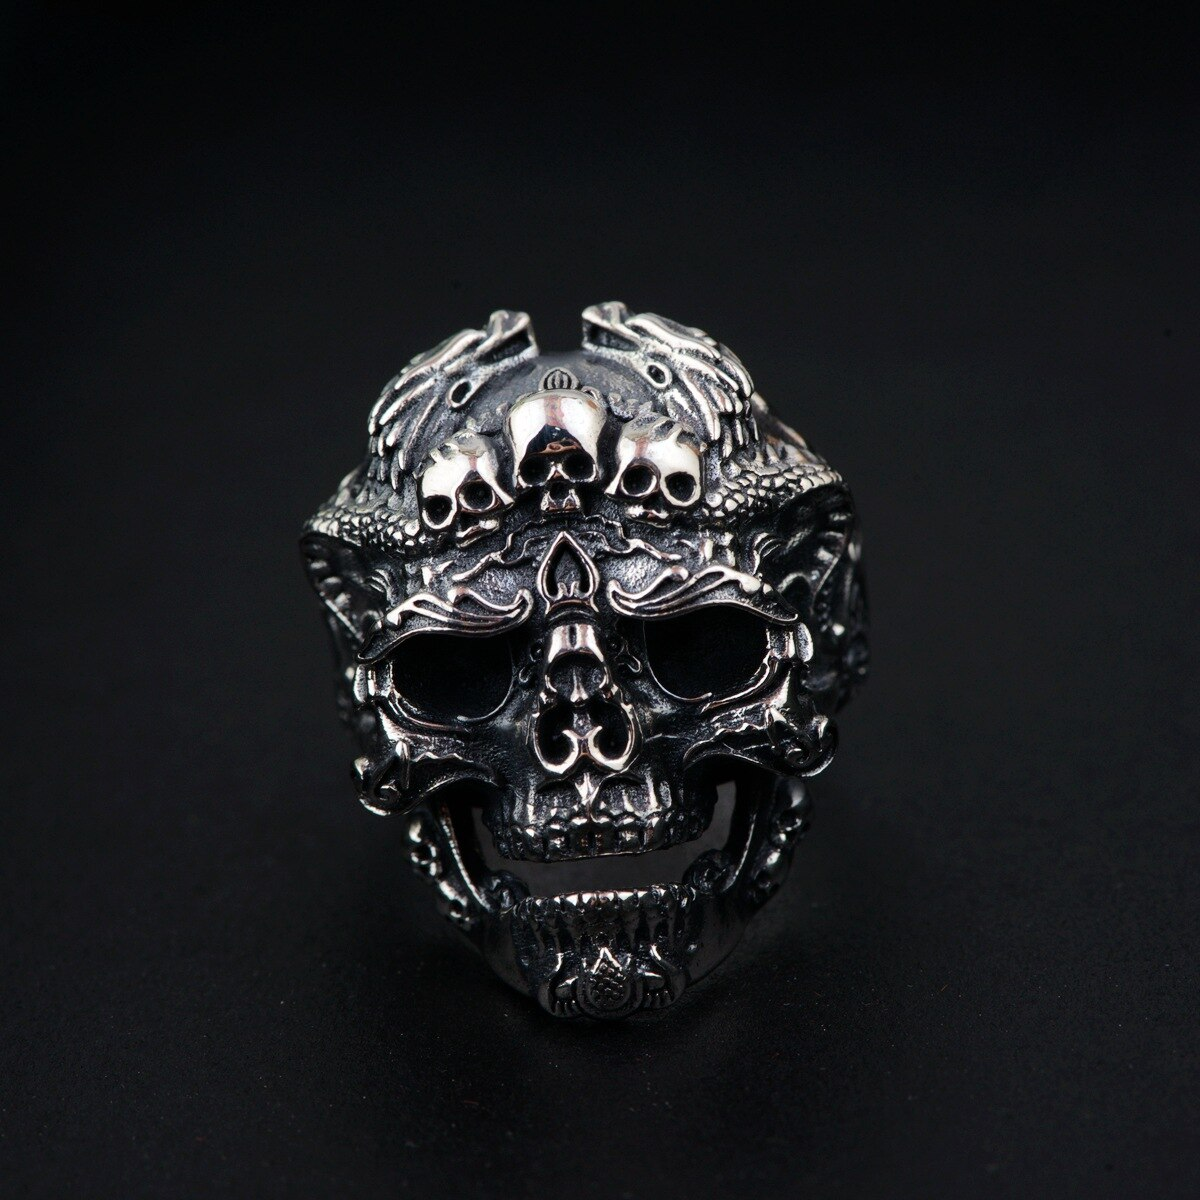 Personalized Skull Head Mens Rings Biker Big Heavy Resizable 925 Sterling Silver Vintage